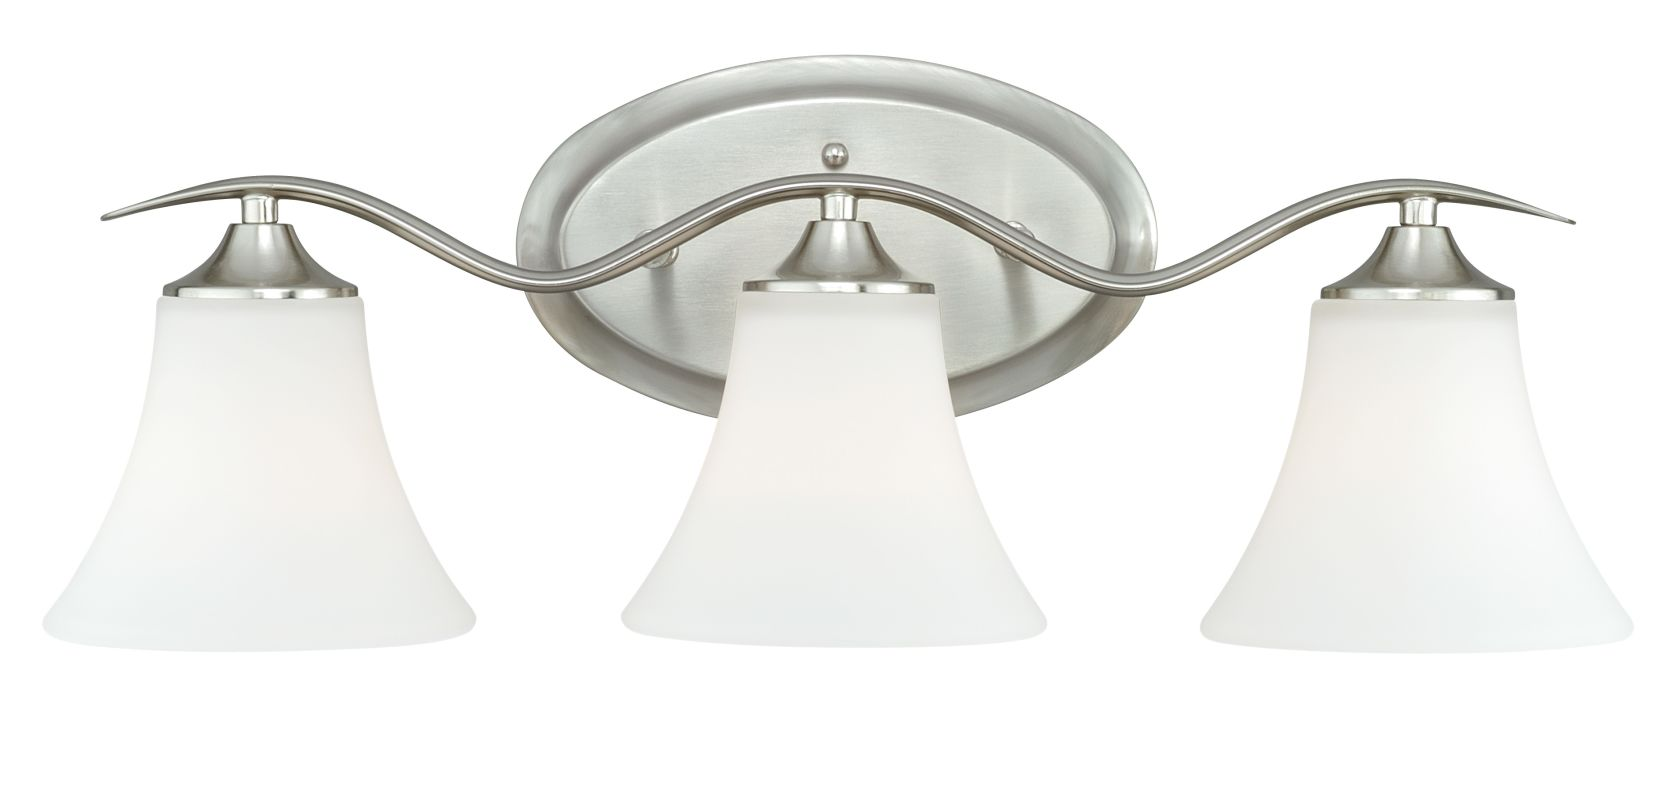 Vaxcel Lighting W0096 Cordoba 3 Light Bathroom Vanity Light - 22.5